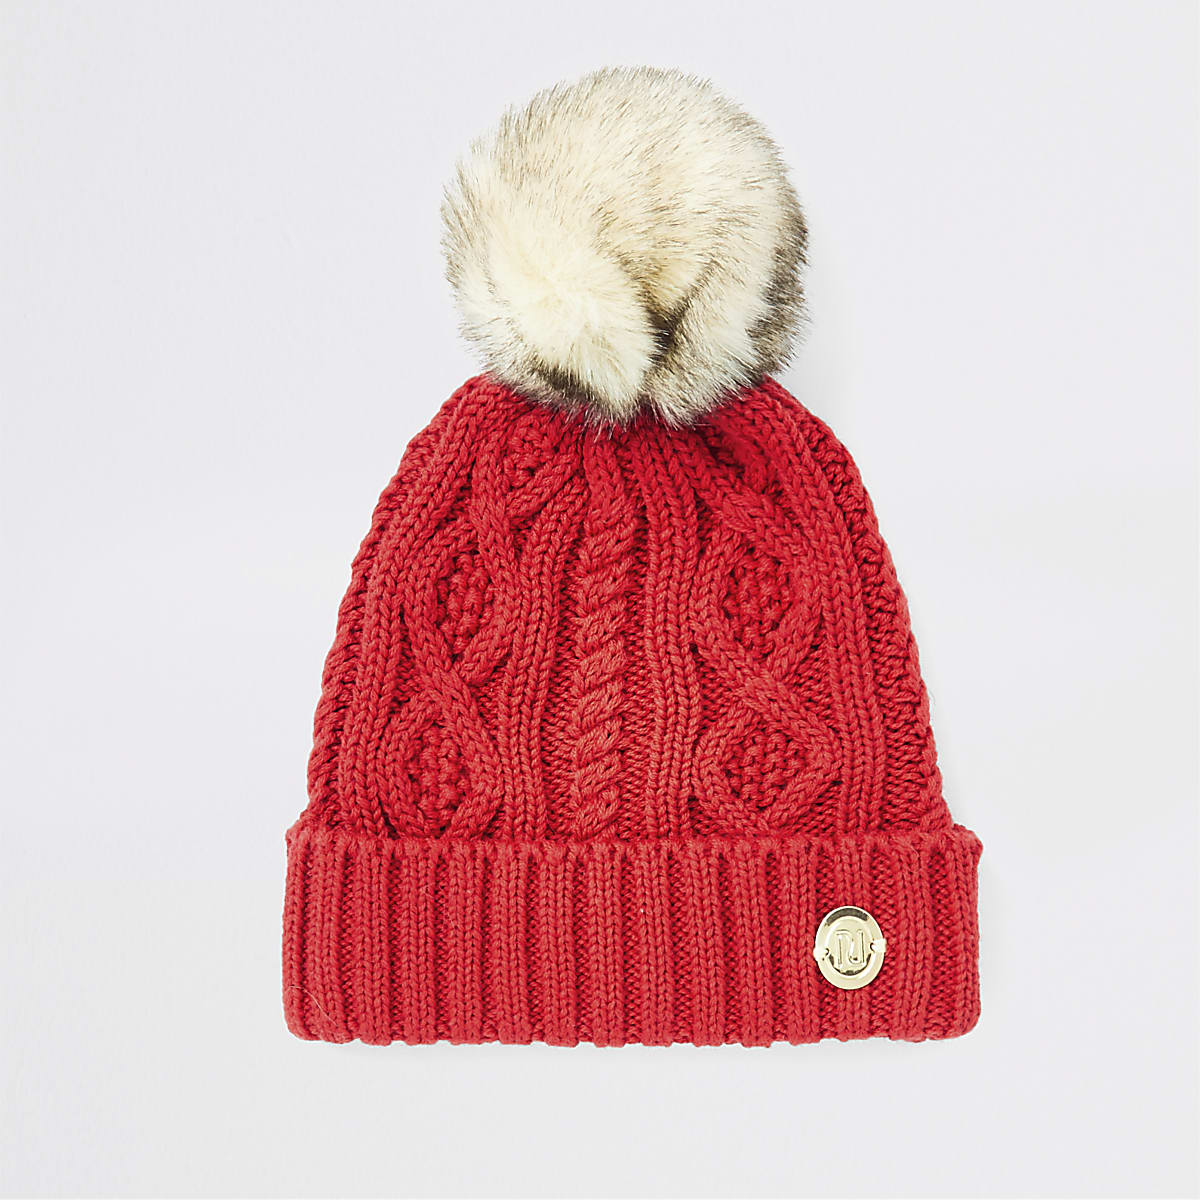 Baby red knitted pom beanie hat